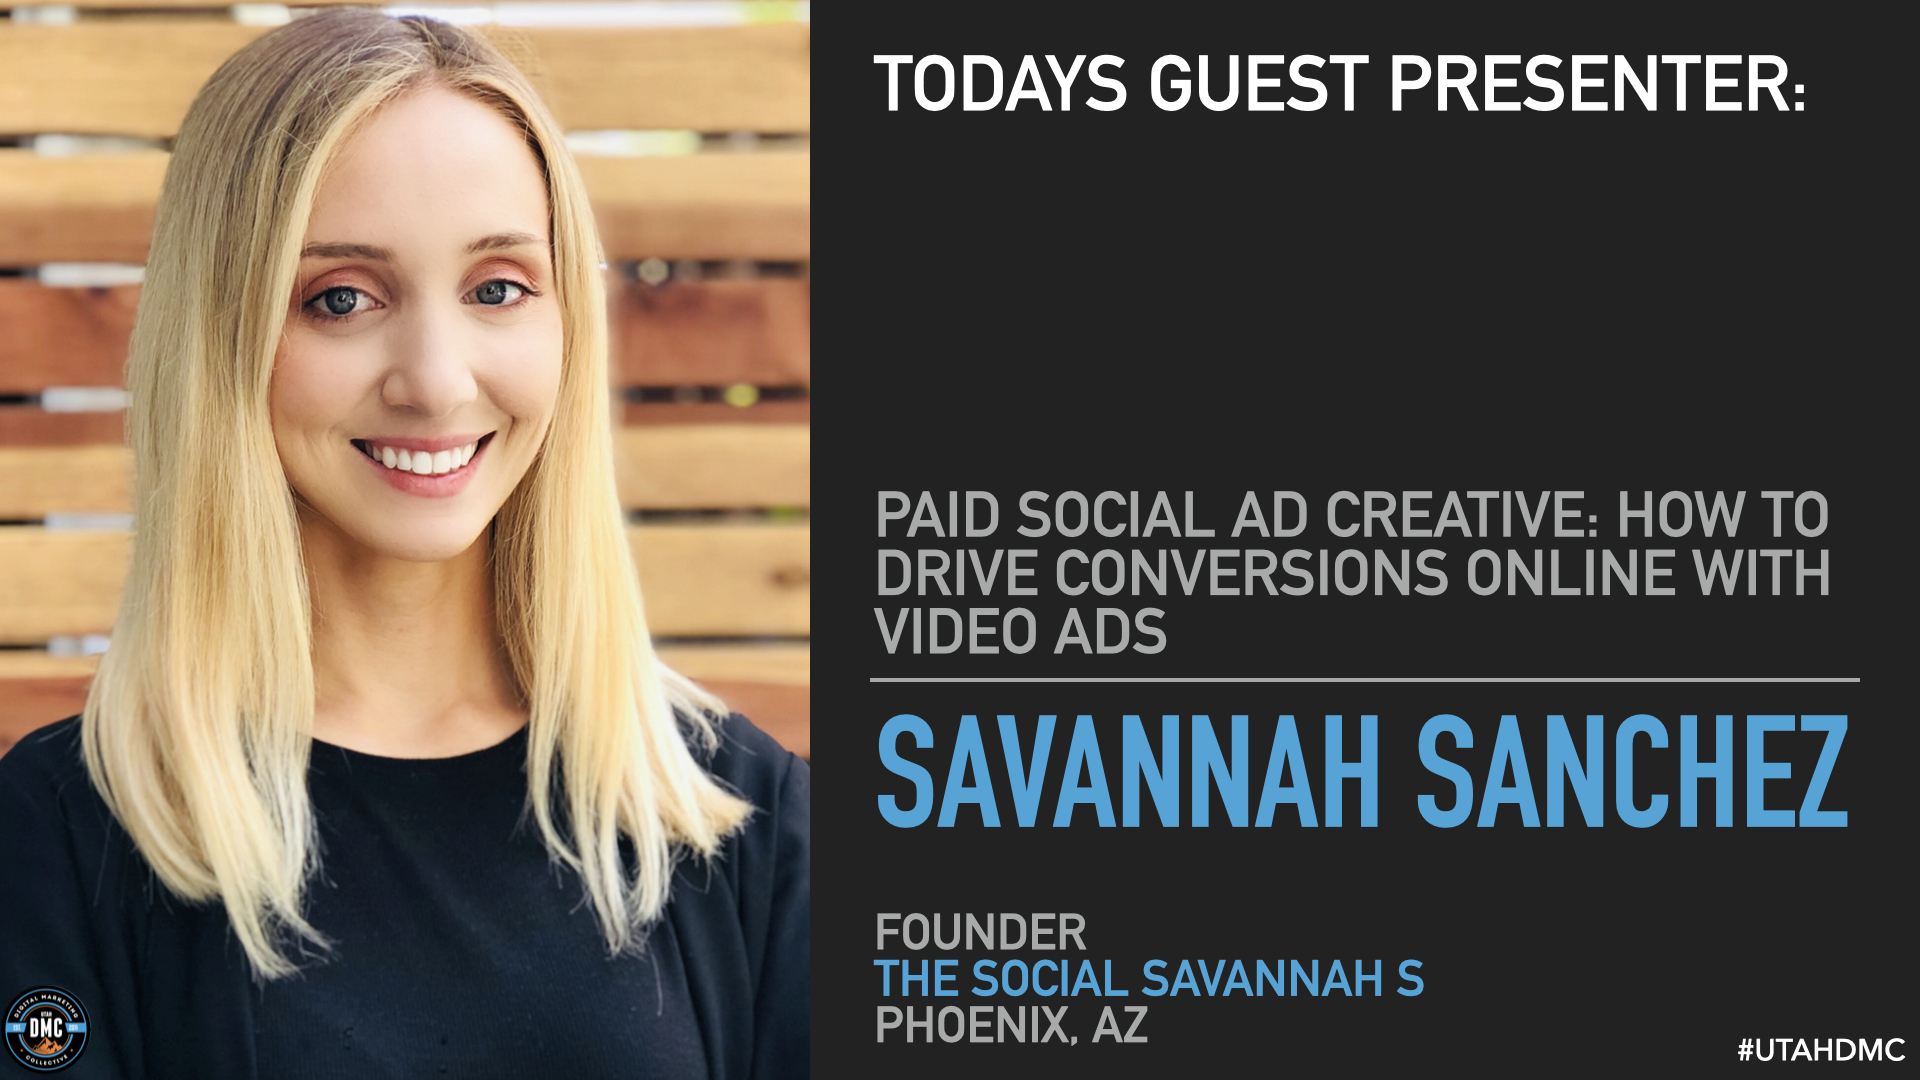 Paid Social Ad Creative: How to Drive Conversions Online with Video Ads